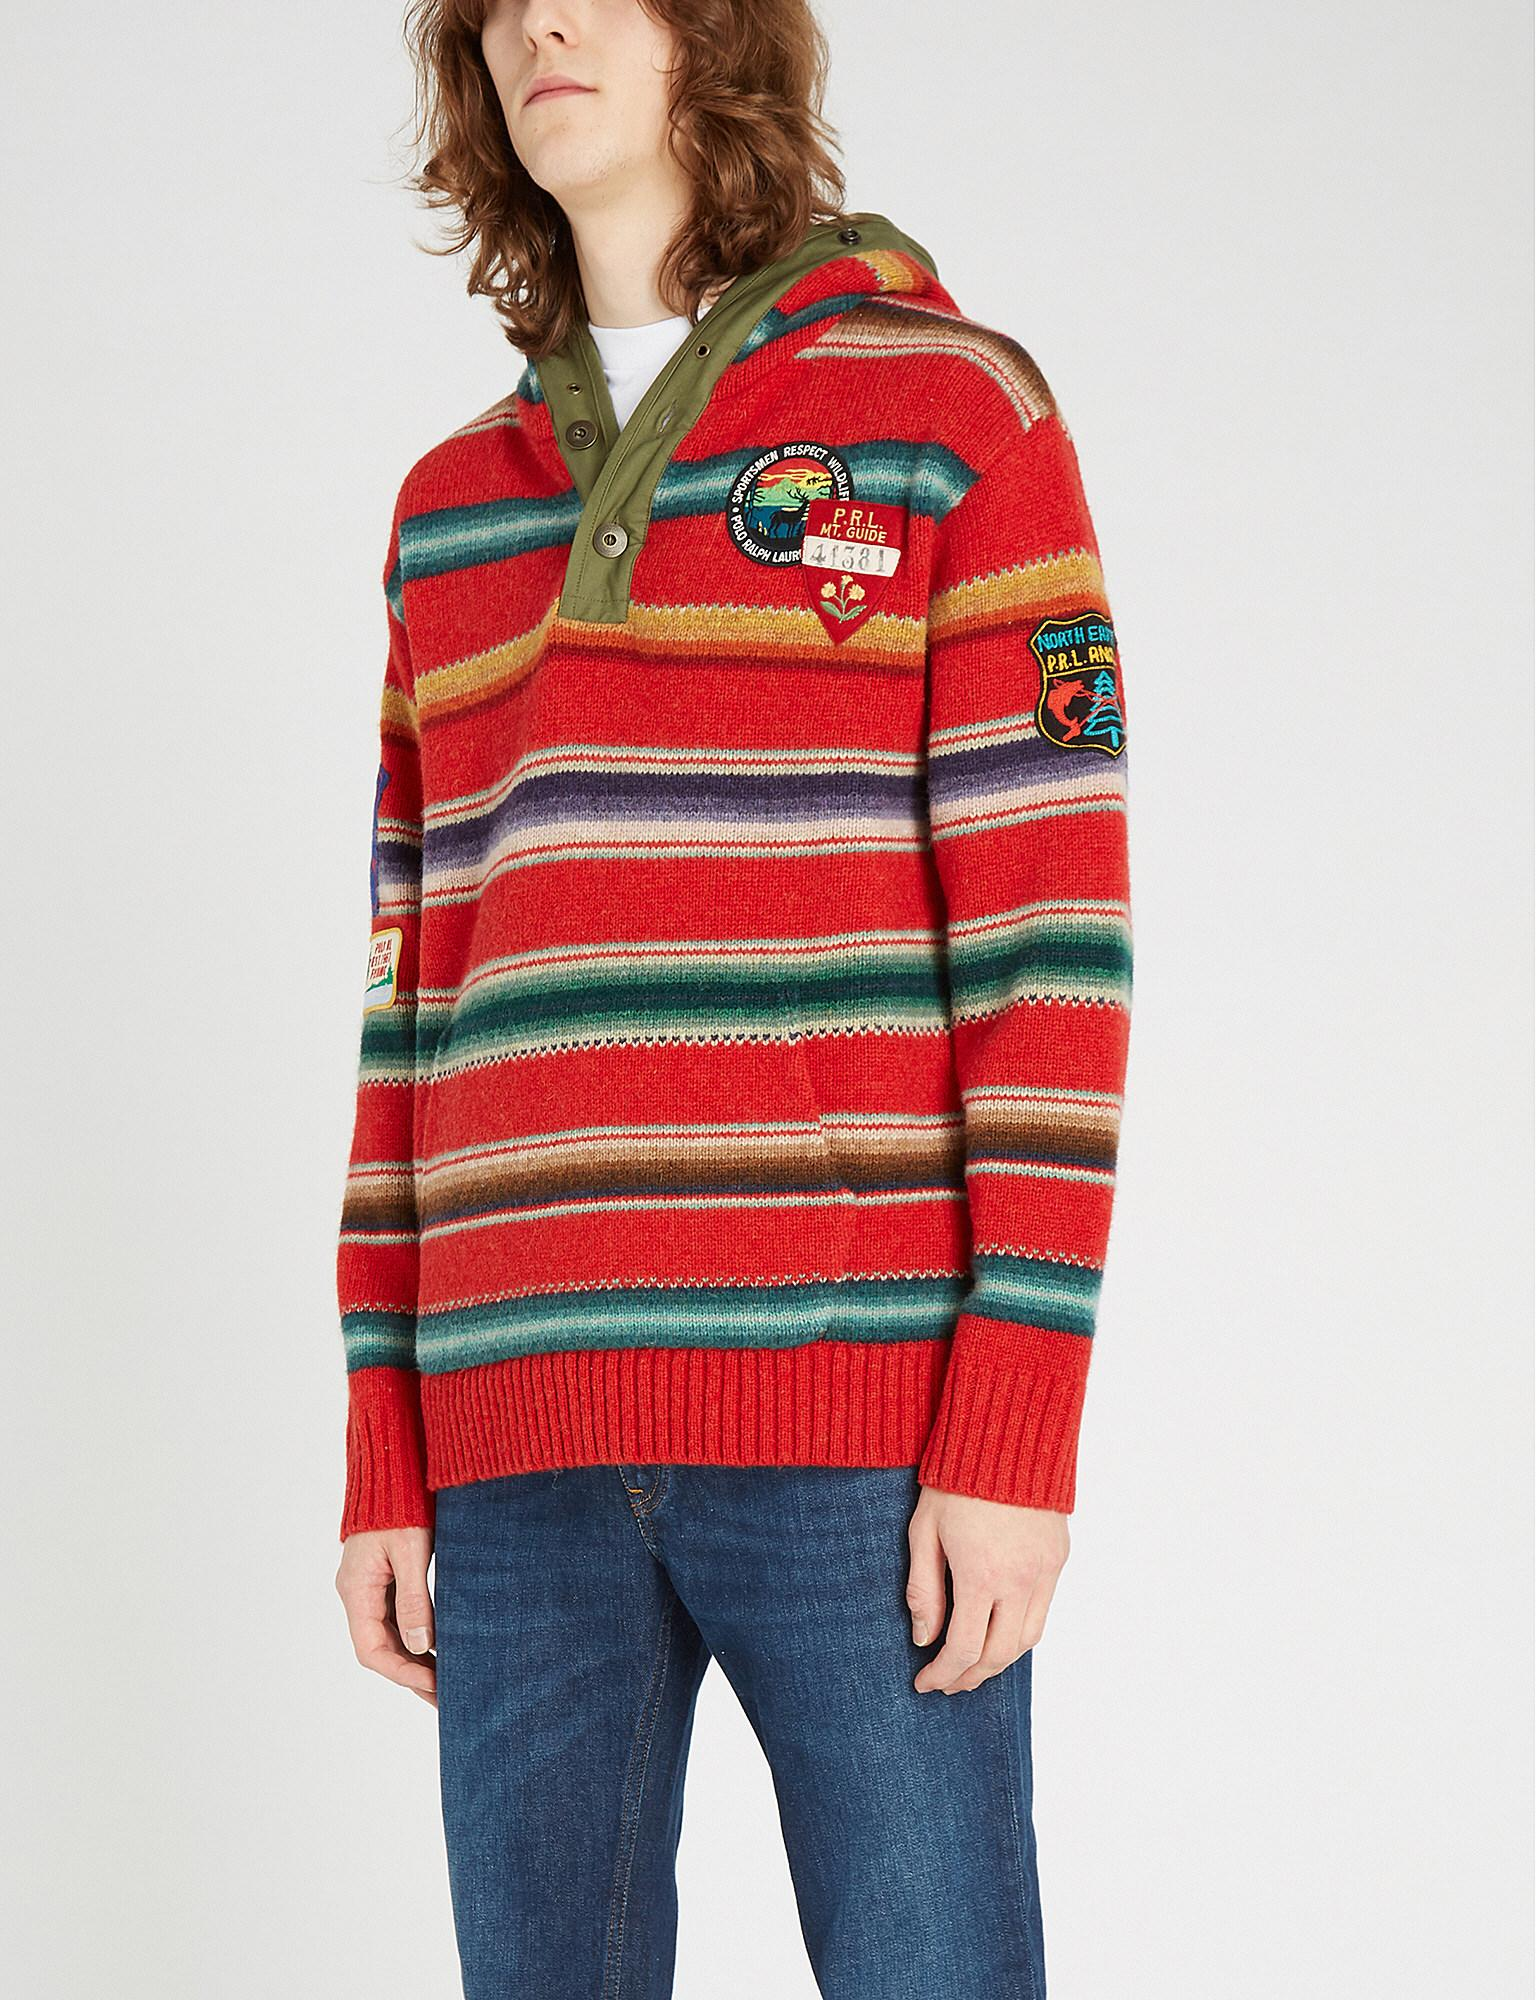 c98ca2e17c93 Lyst - Polo Ralph Lauren Striped Hooded Wool Jumper in Red for Men ...